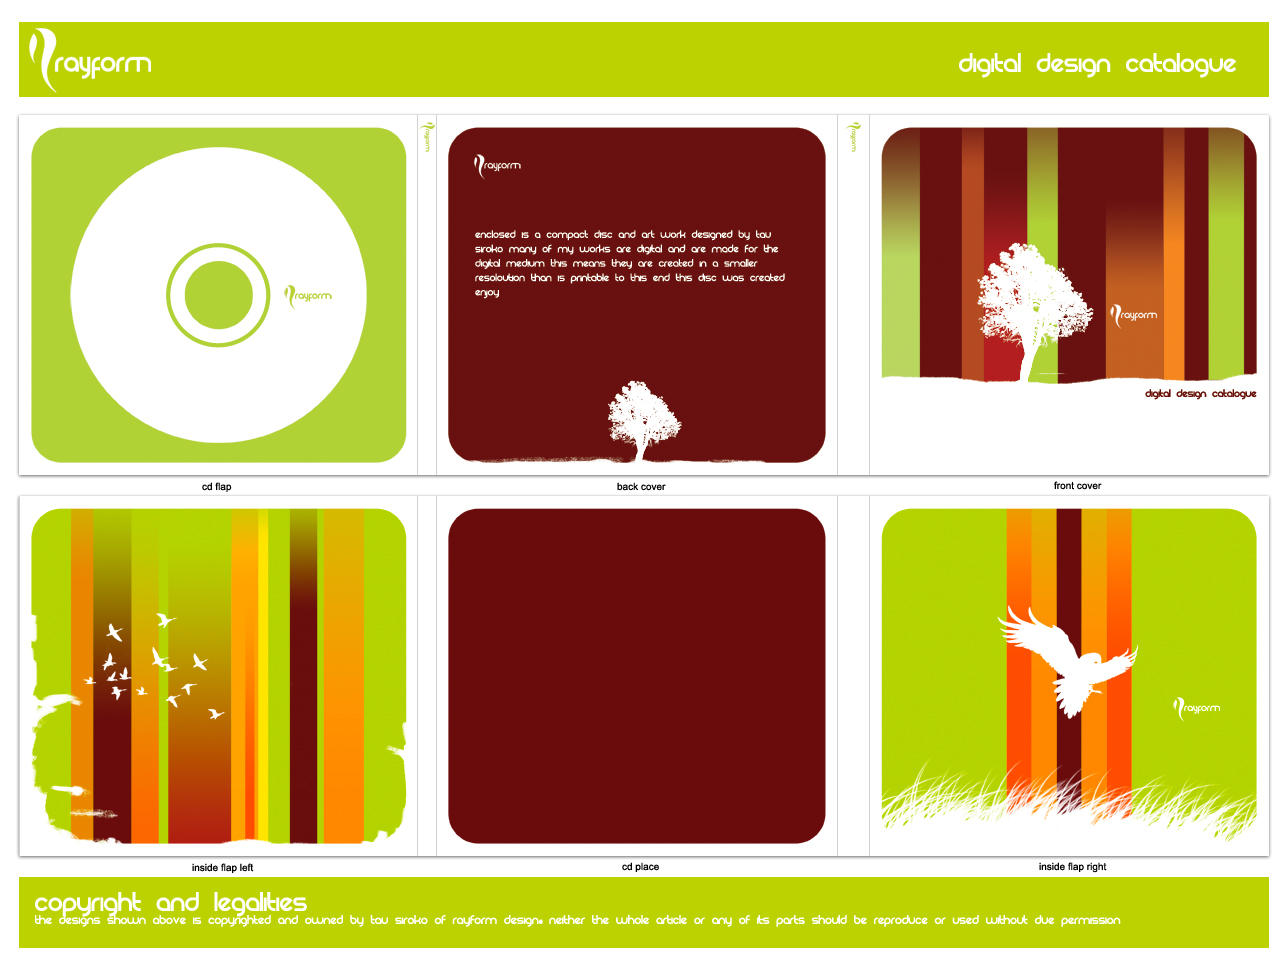 CD cover design by acronym16